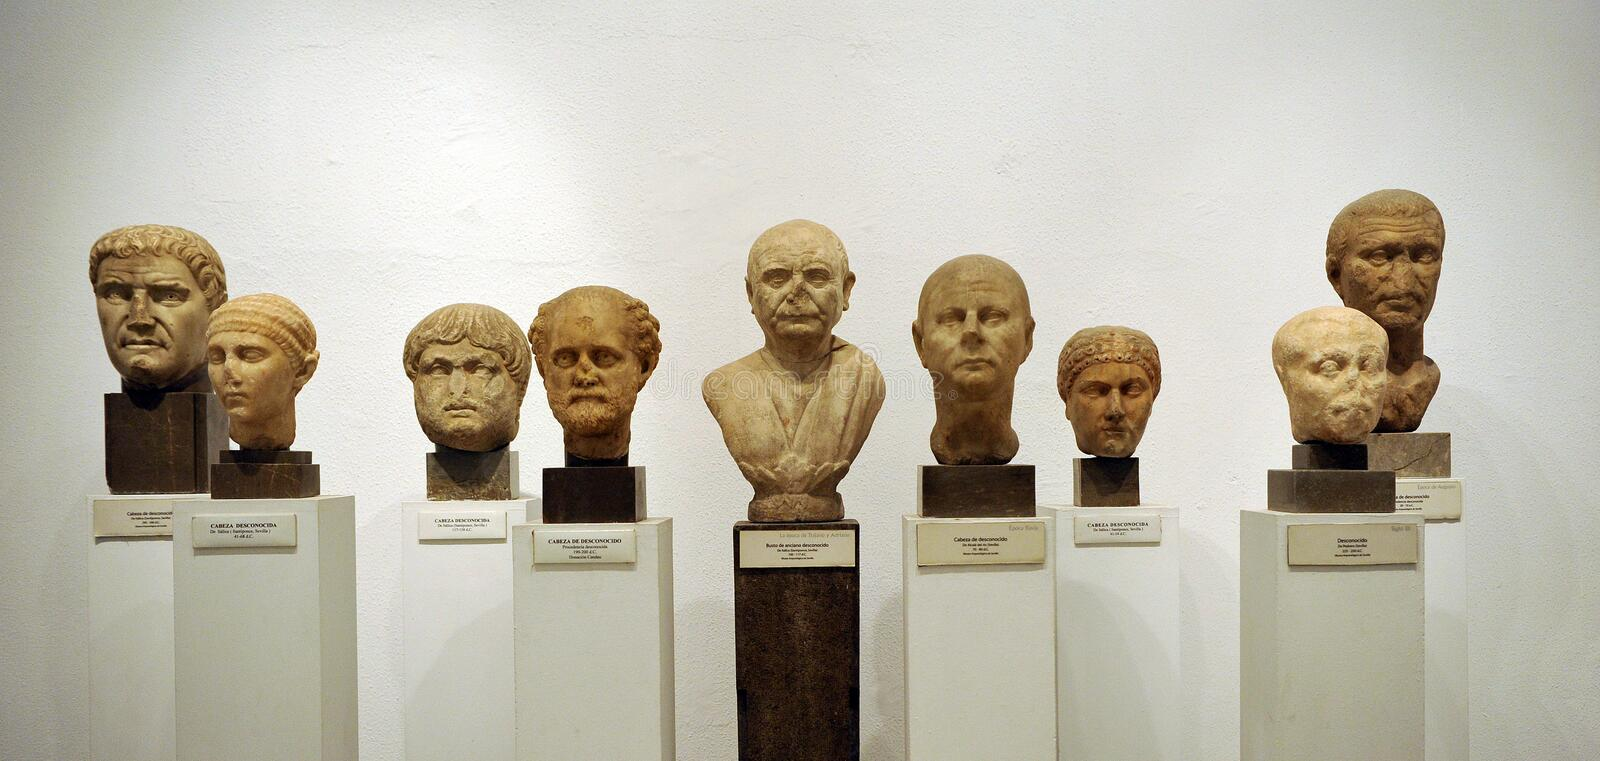 Busts of Roman citizens, marble sculptures. Heads of Roman citizens inhabitants of the city of Italica, which is in the Archaeological Museum of Seville stock photo